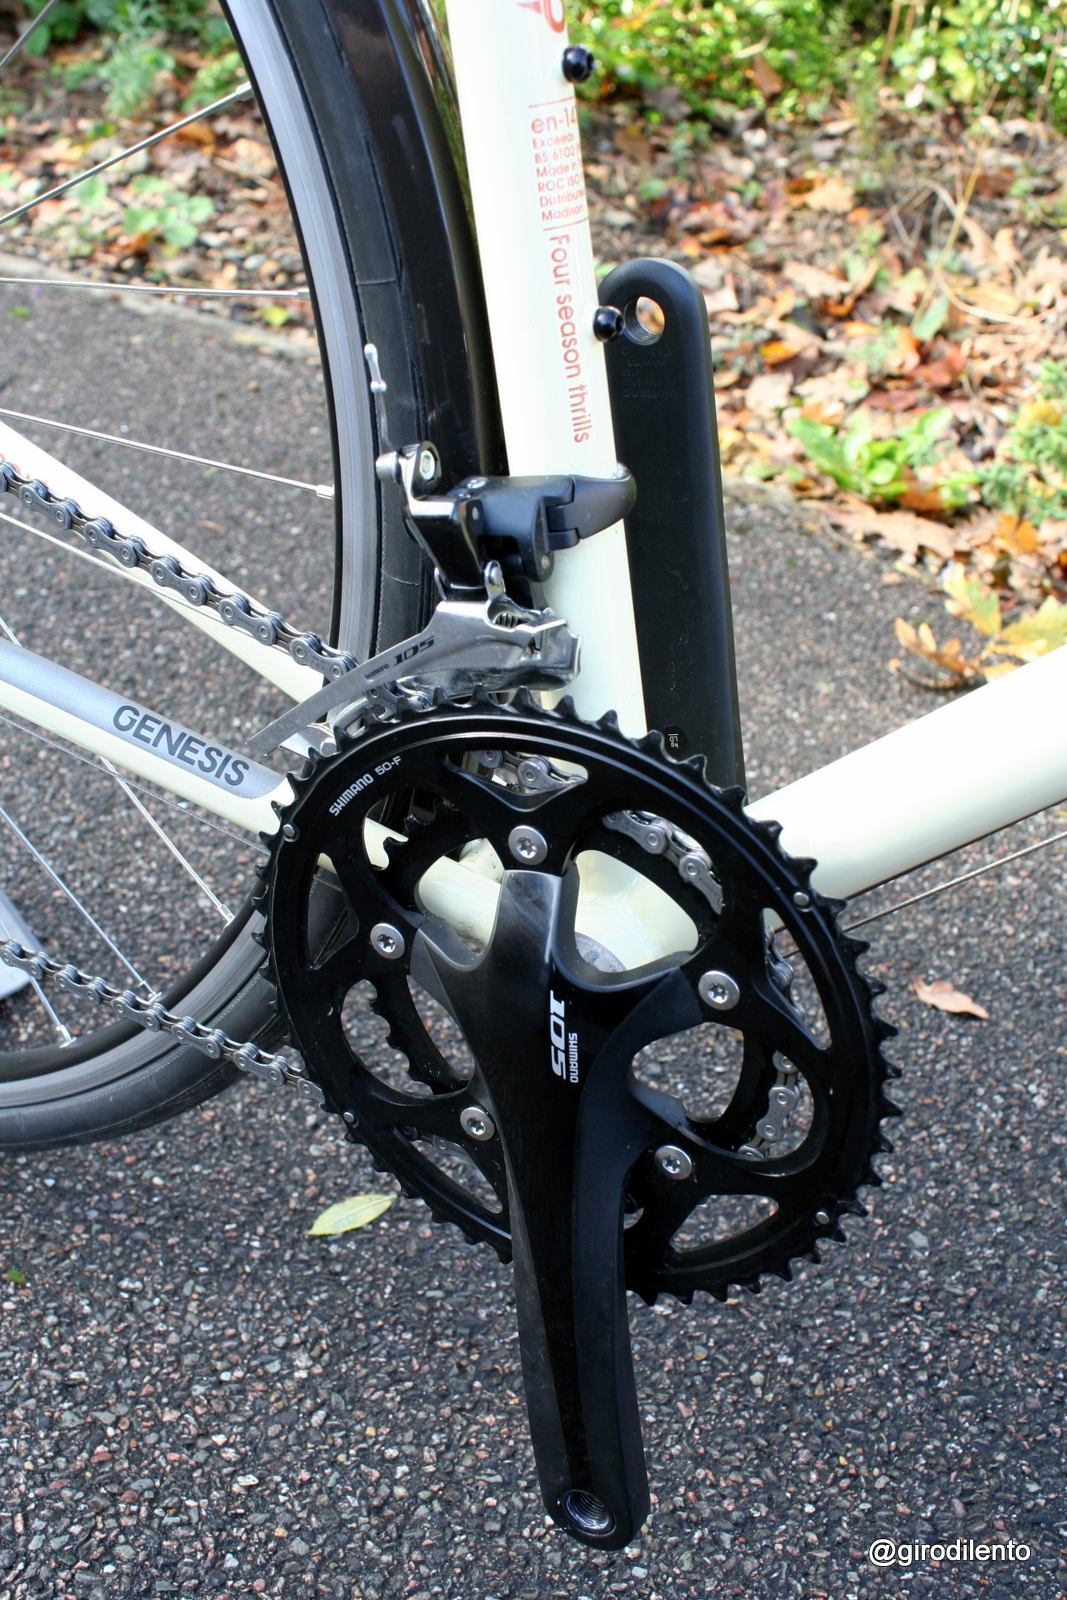 Shimano 105 in black goes very well with the colours of the bike